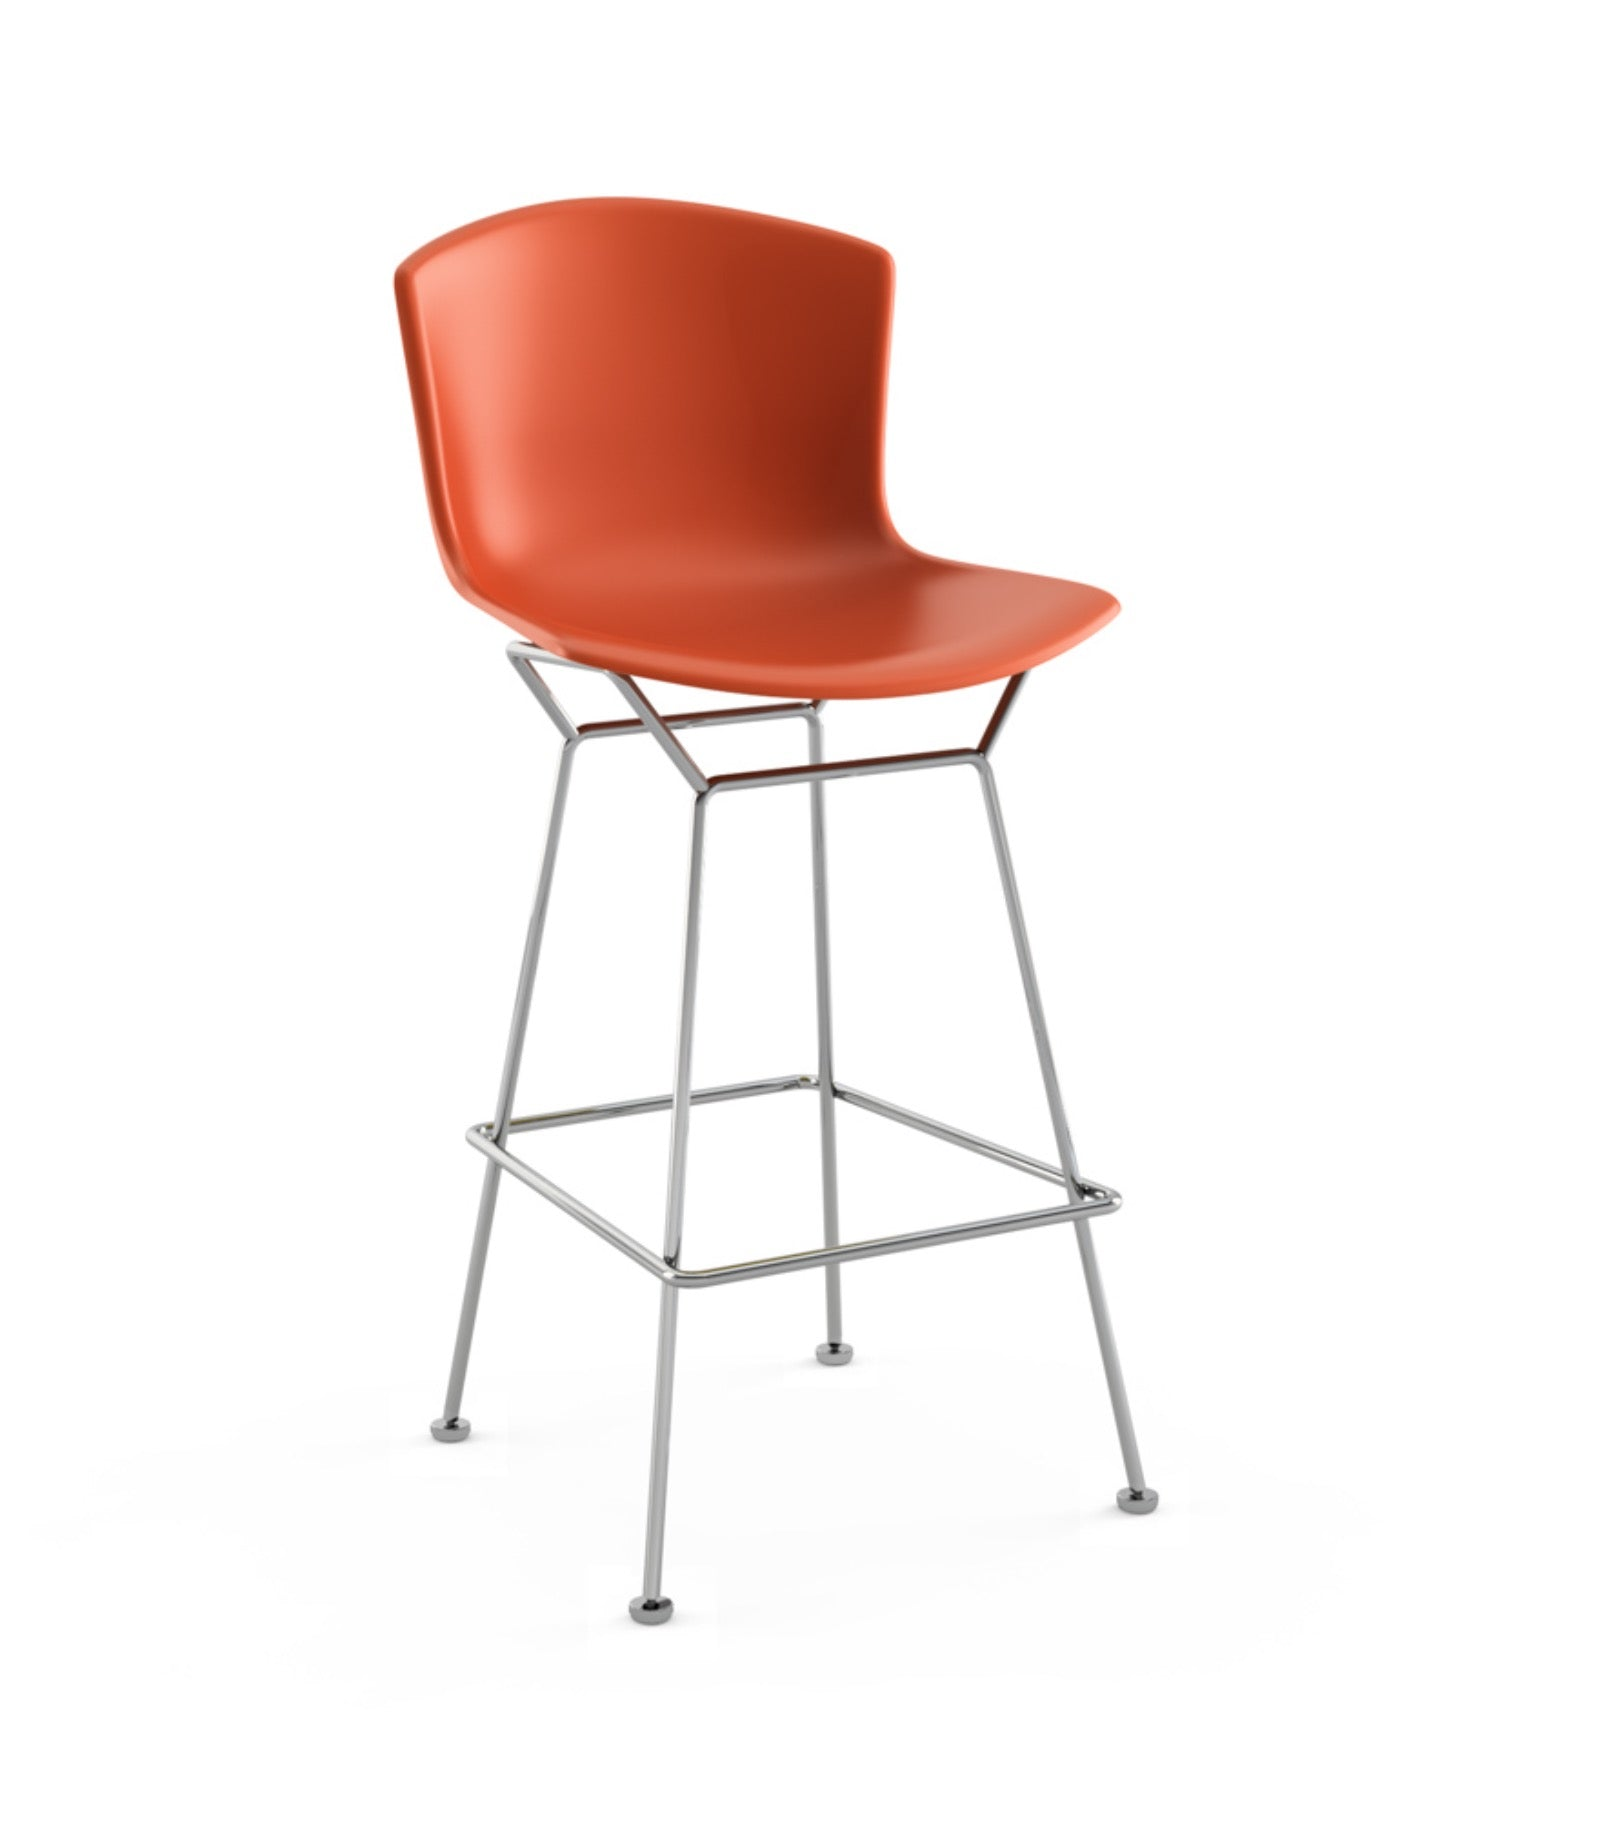 Bertoia Counter Height Plastic Bar Stool